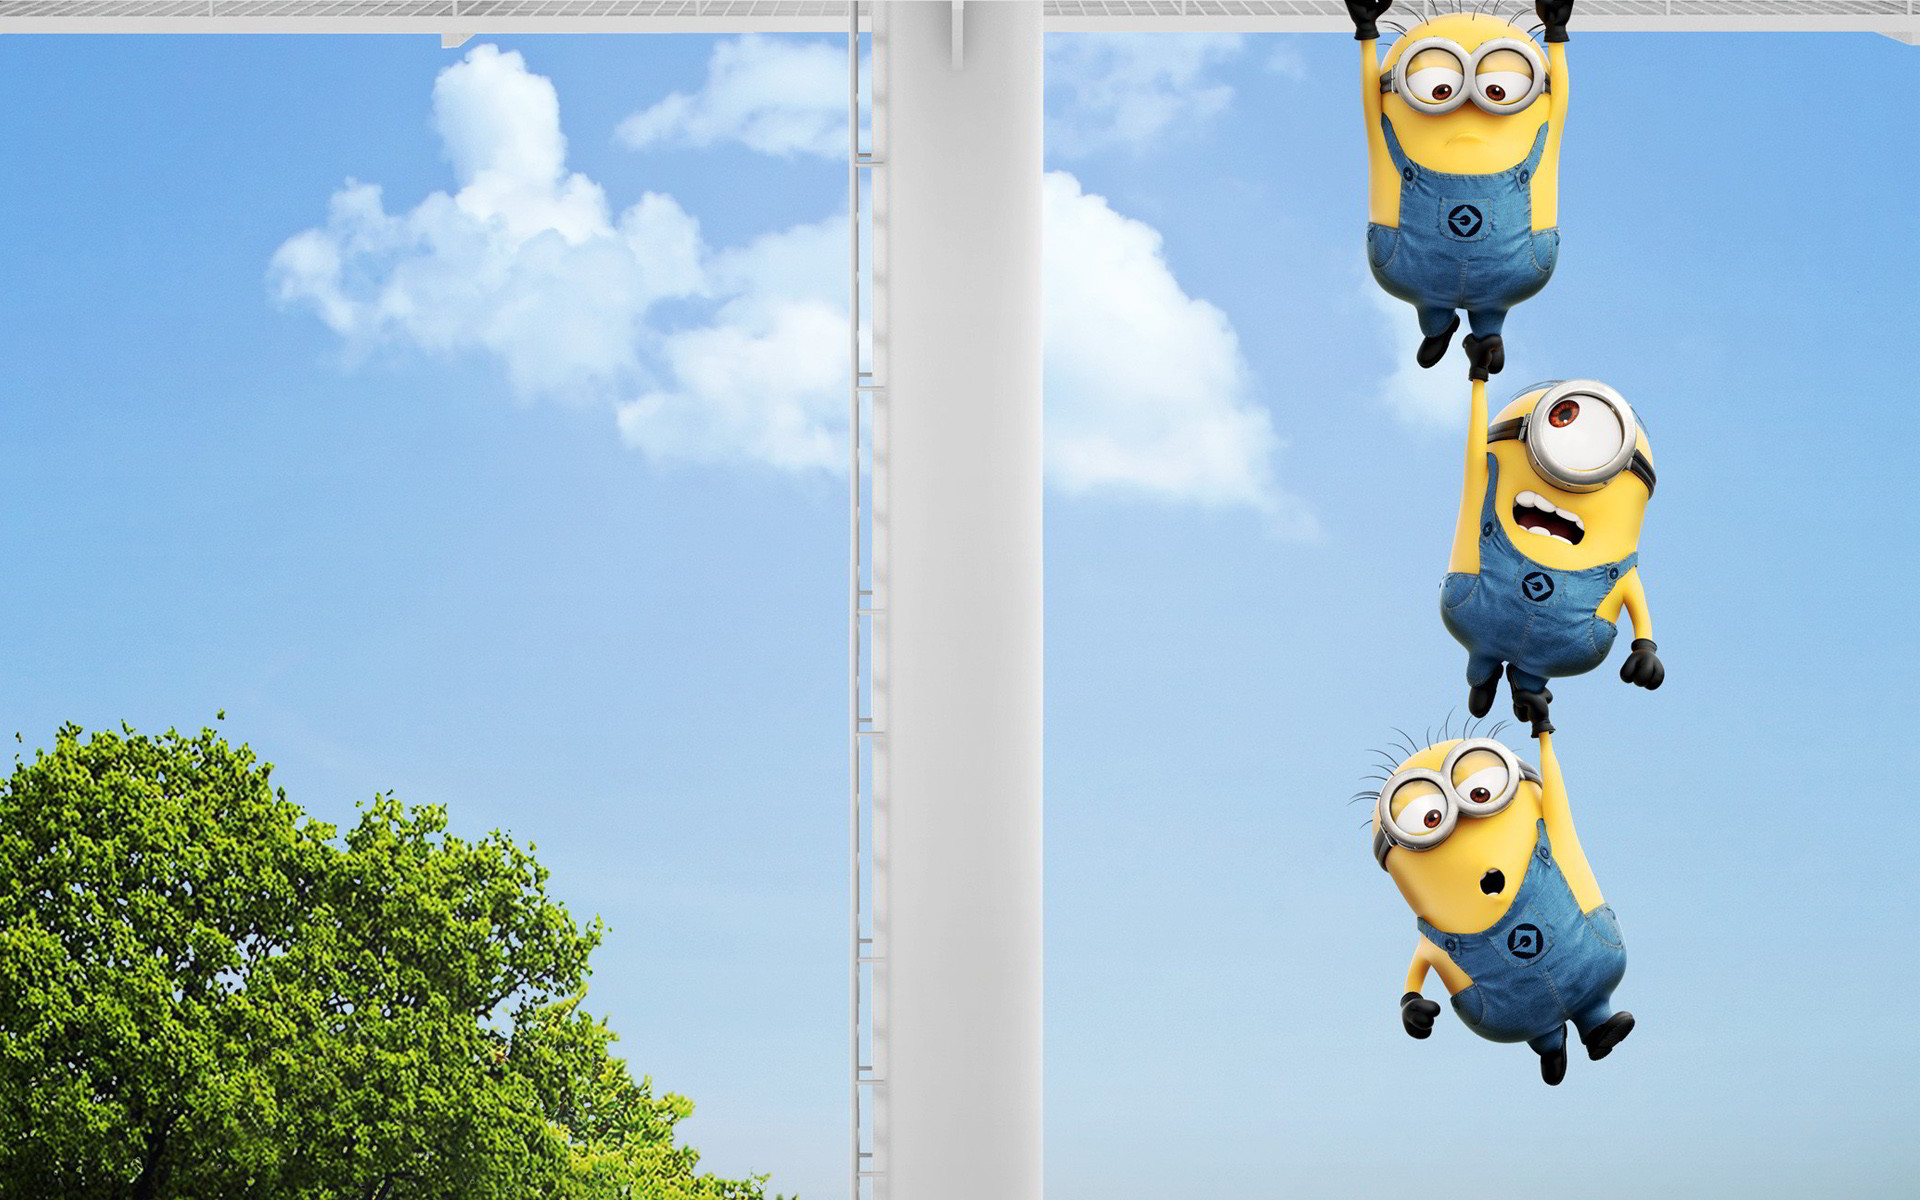 … funny cute minions hd wallpapers hd wallpapers gifs …